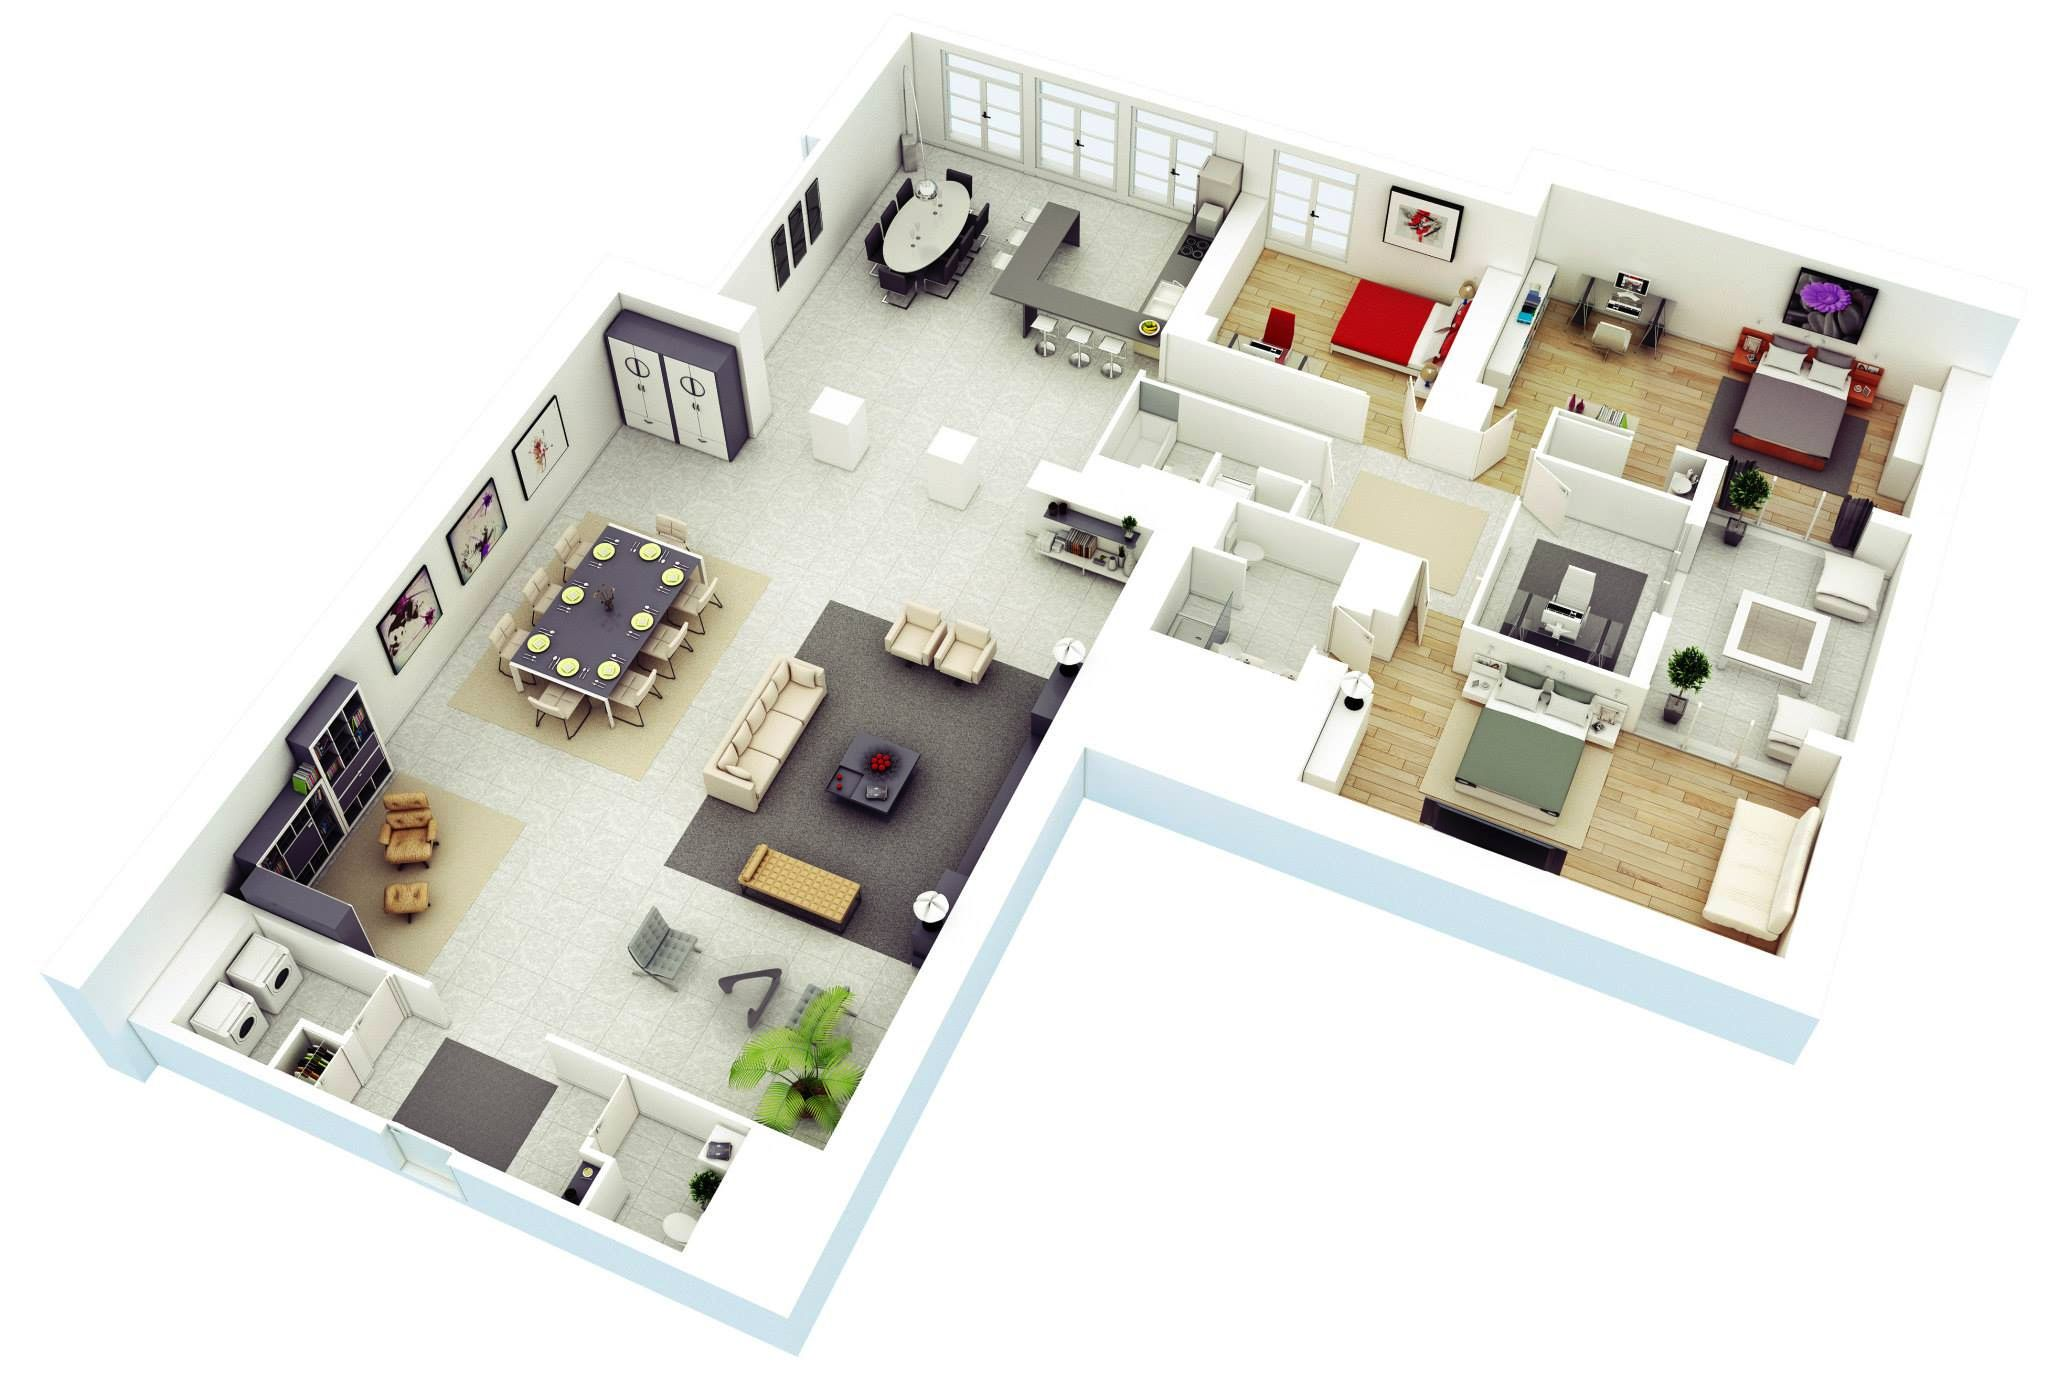 . Understanding 3D Floor Plans And Finding The Right Layout For You